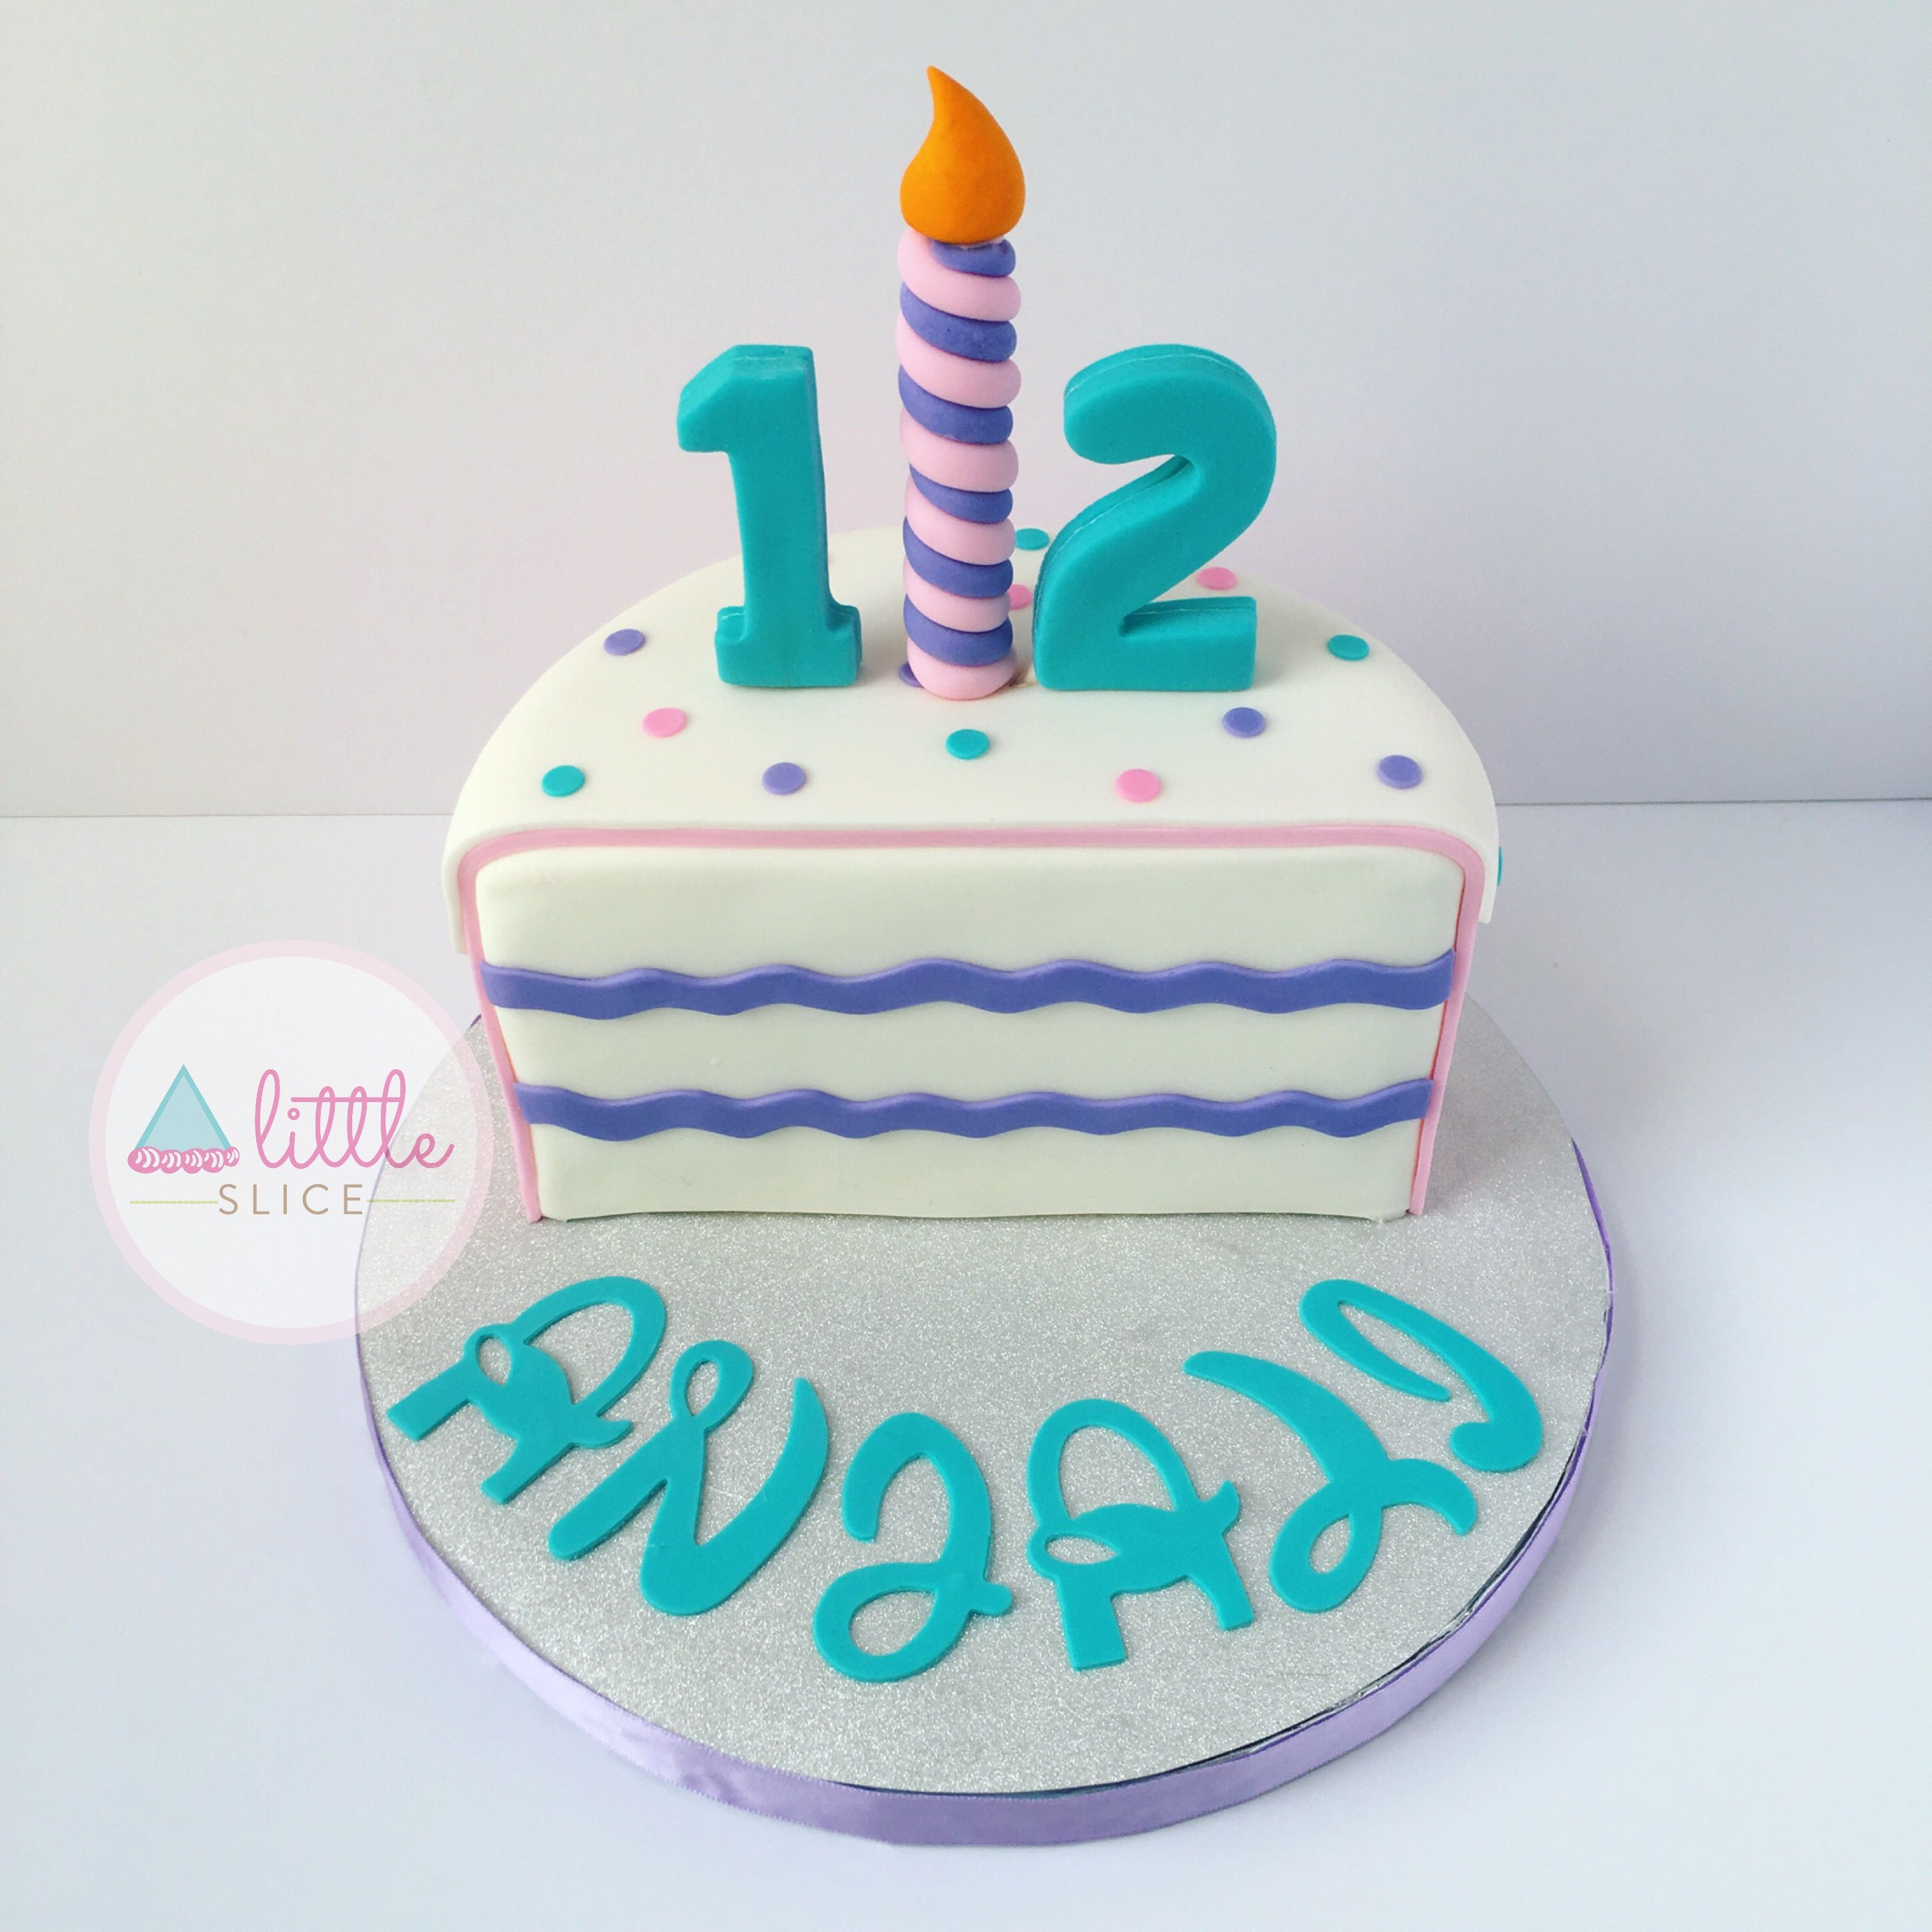 1 2 Birthday Cake 6 Months Cake Follow Us On Instagram